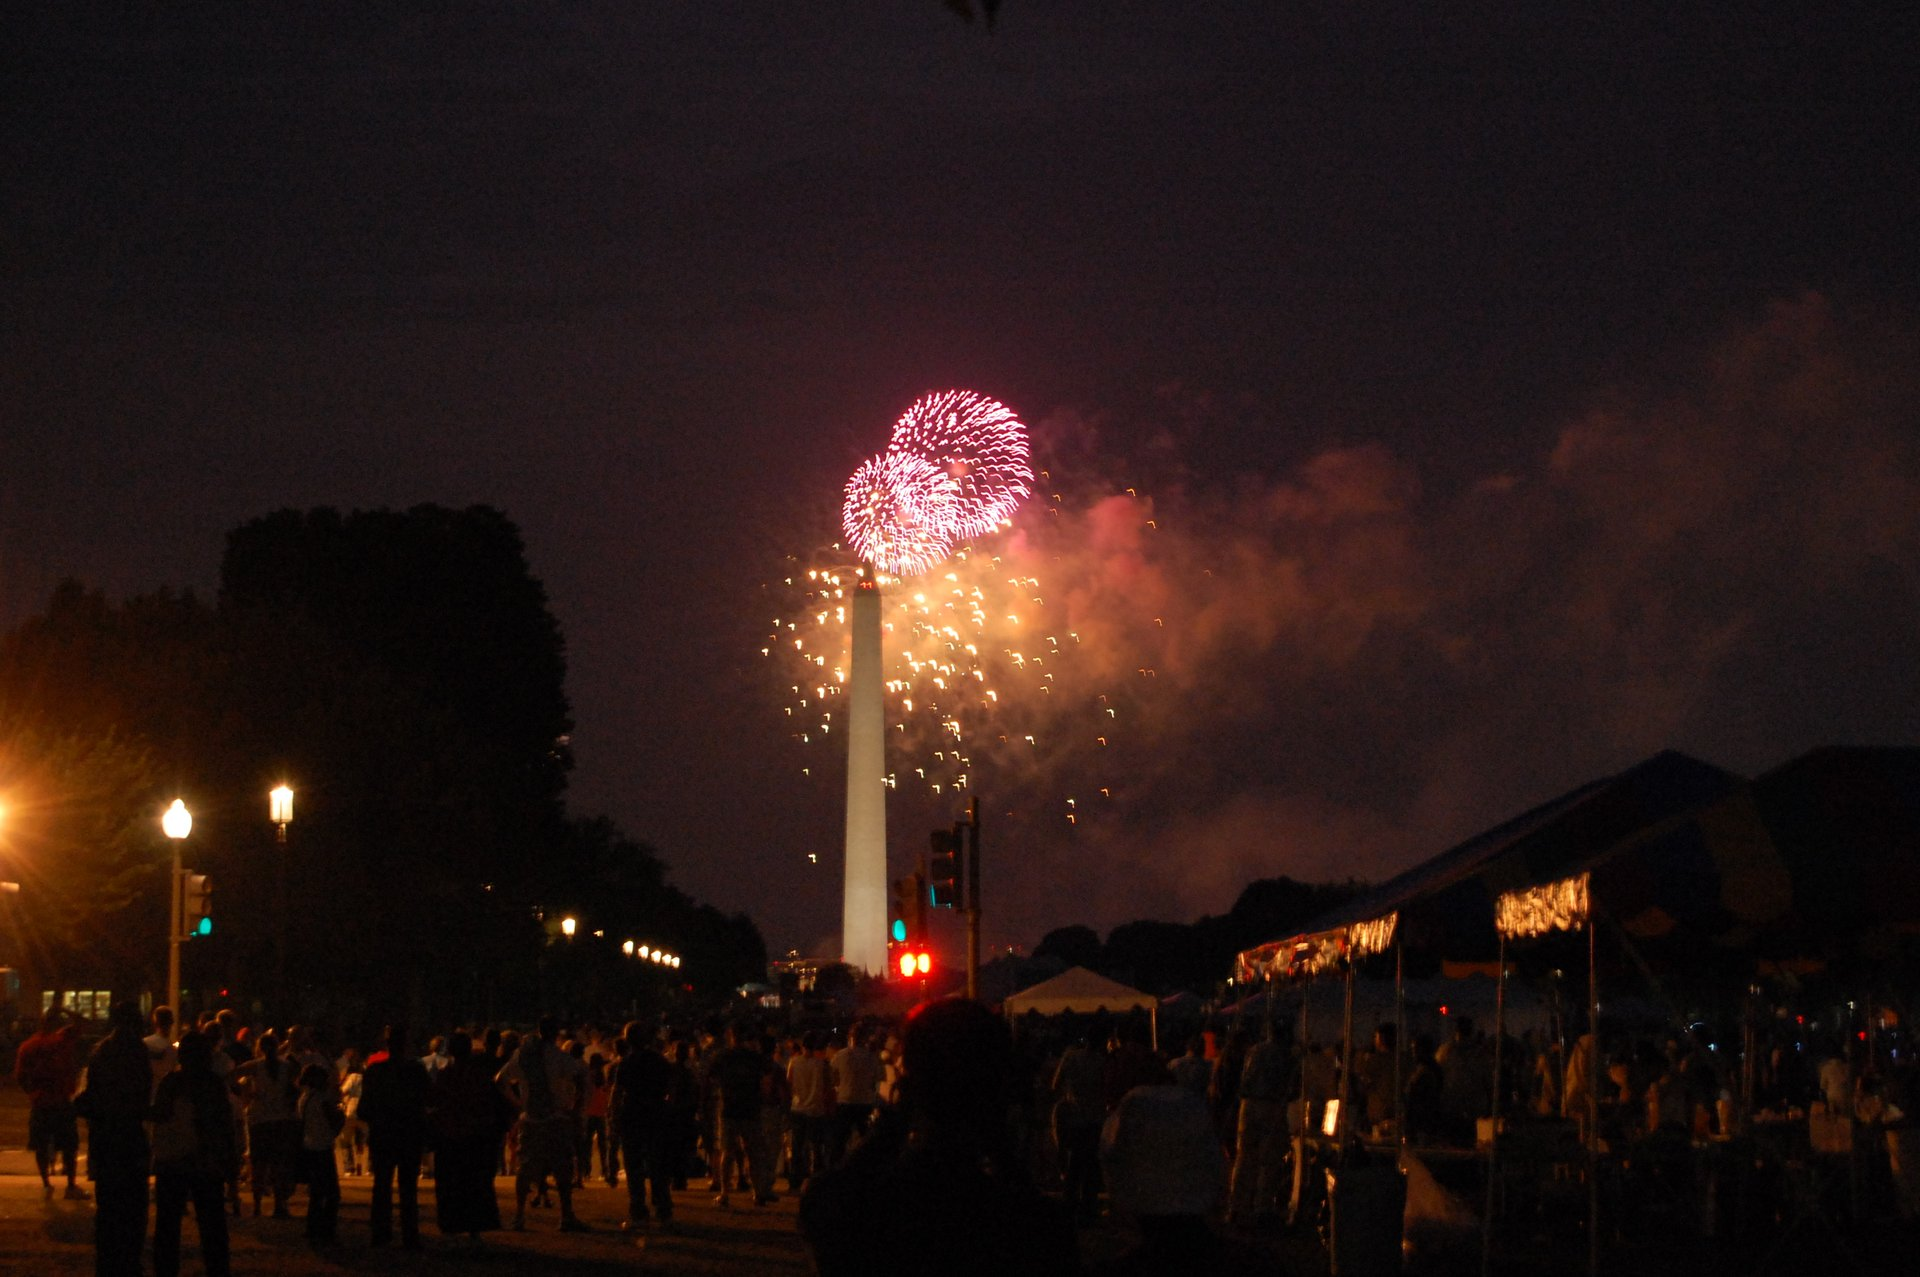 Best time for 4th of July Concert, Parade & Fireworks in Washington, D.C. 2020